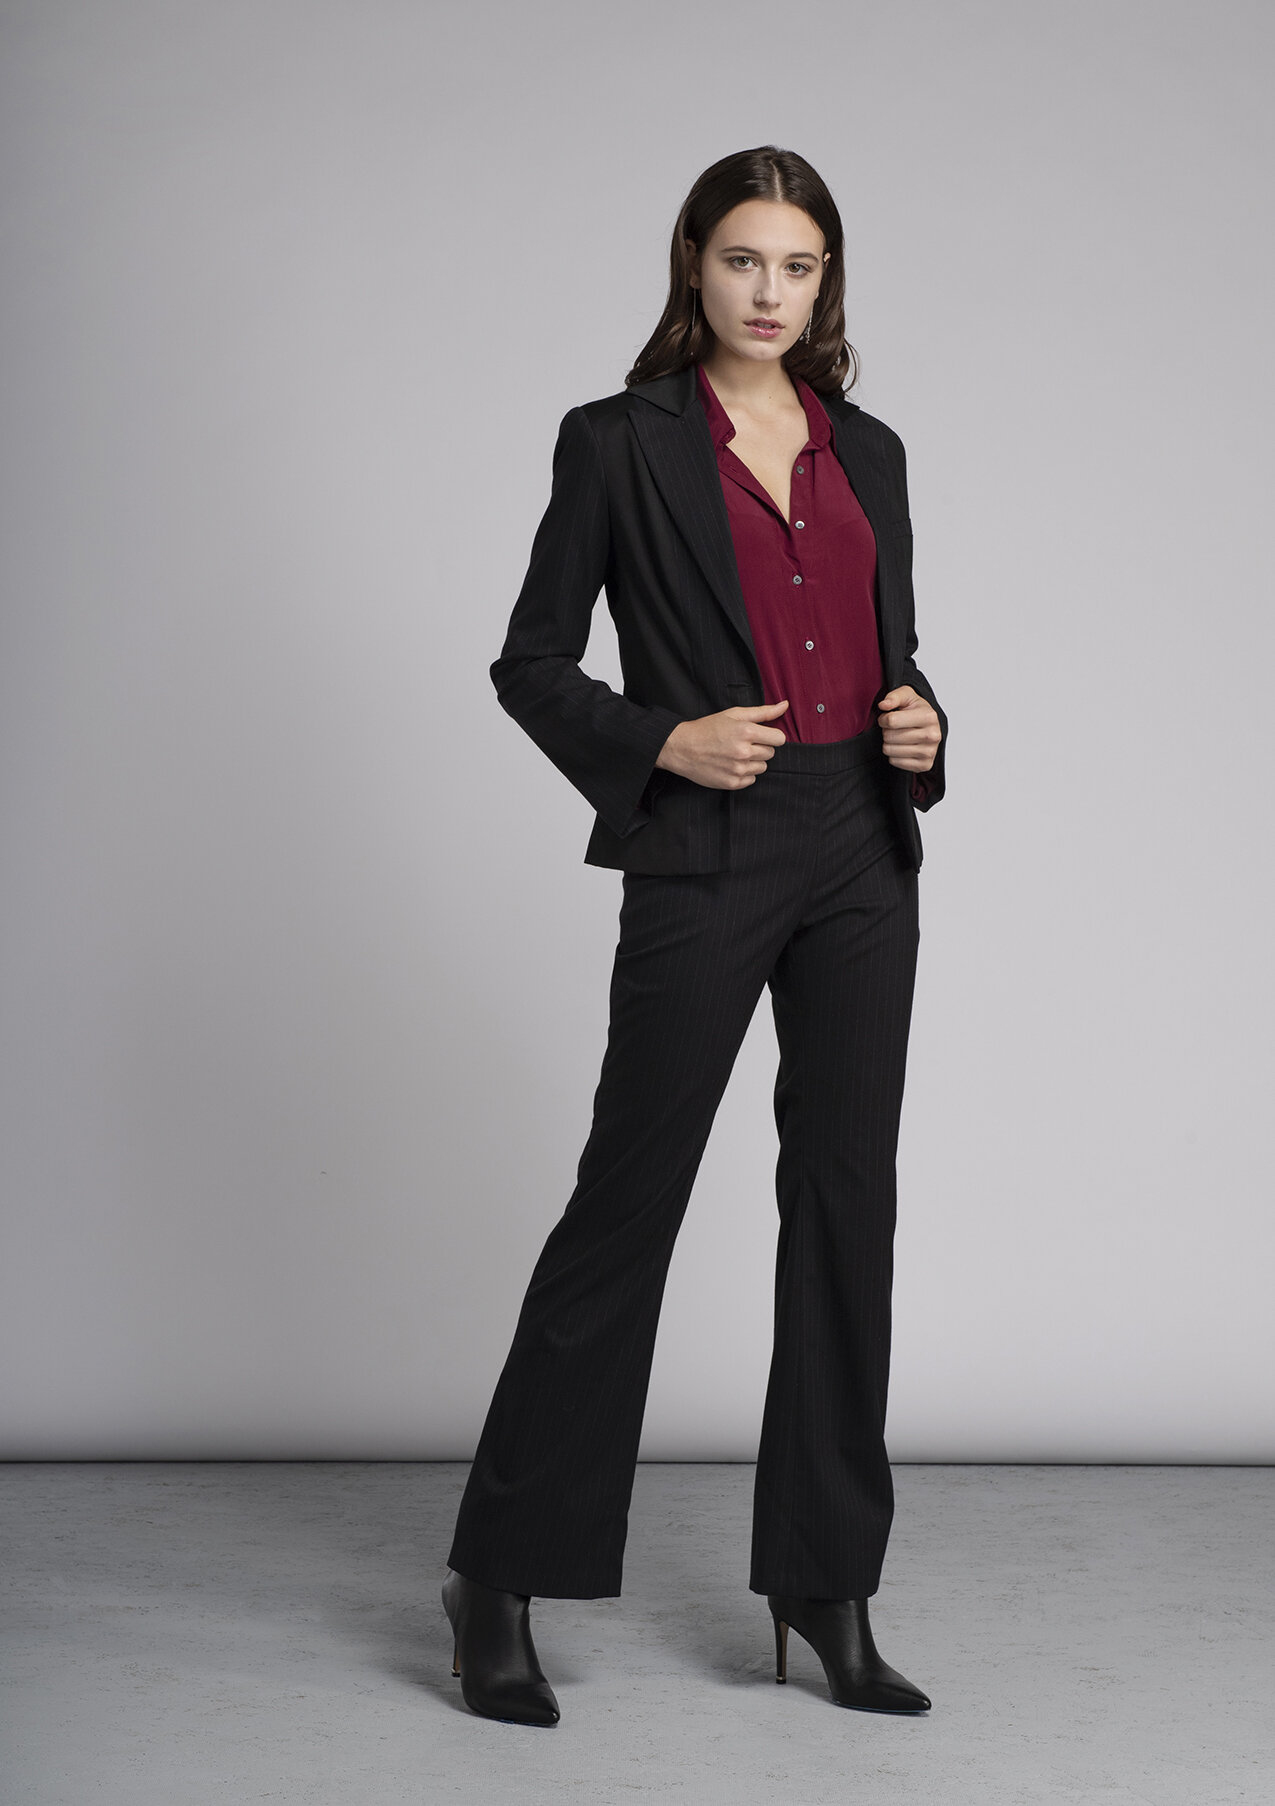 Women's made-to-measure suit